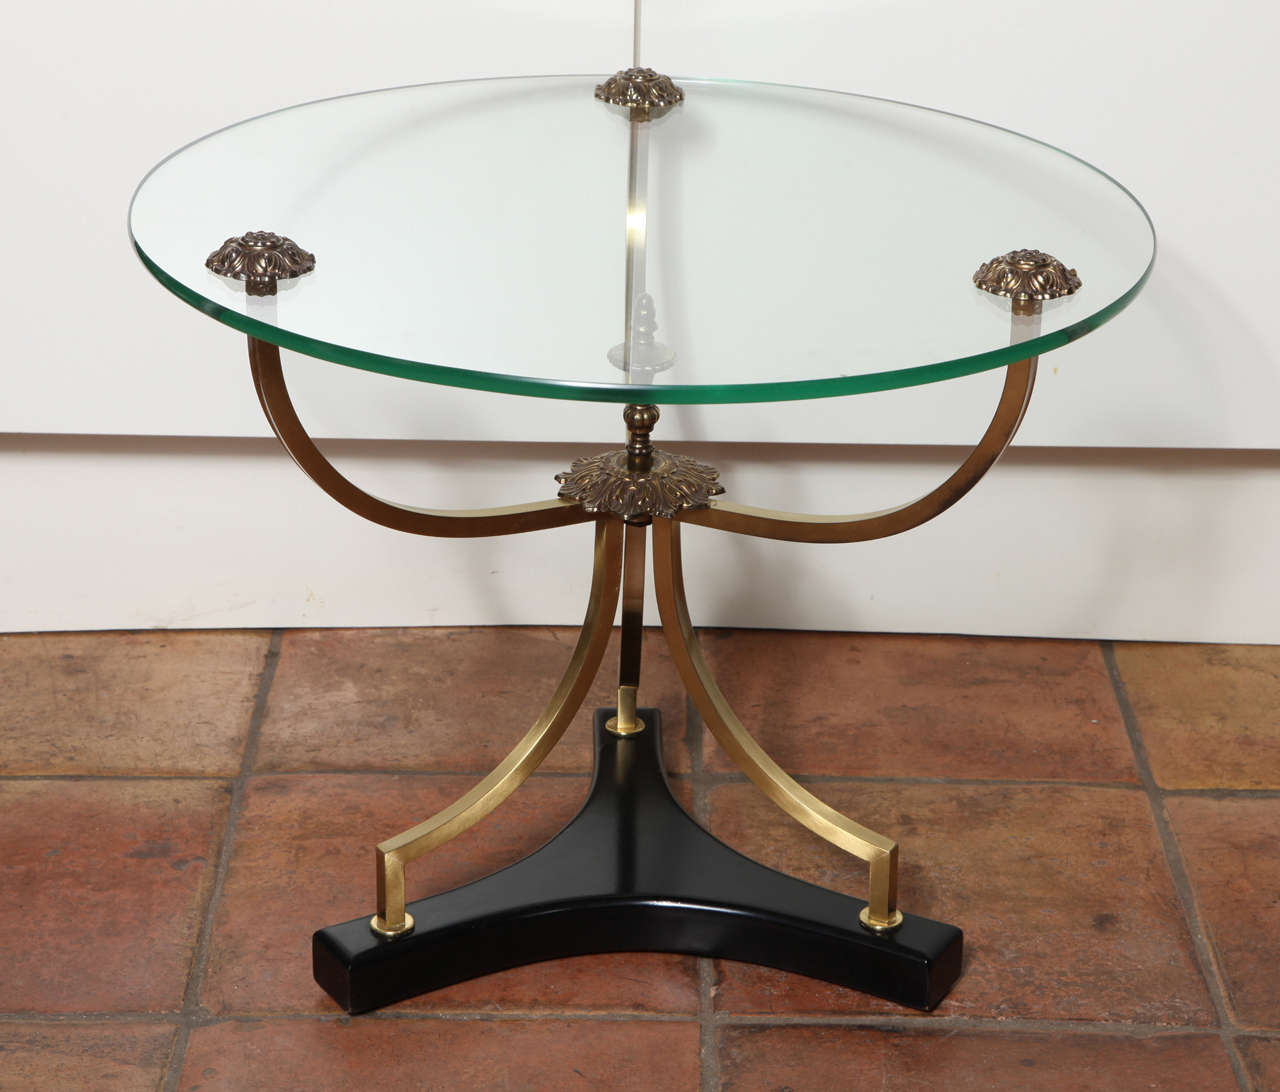 This gorgeous set of two Art Deco side tables that are light and low. They are perfect for a low sofa or low chair. The bronze base has flowers details at the glass top and in the center of the base. The T-shaped dark mahogany wood base with its